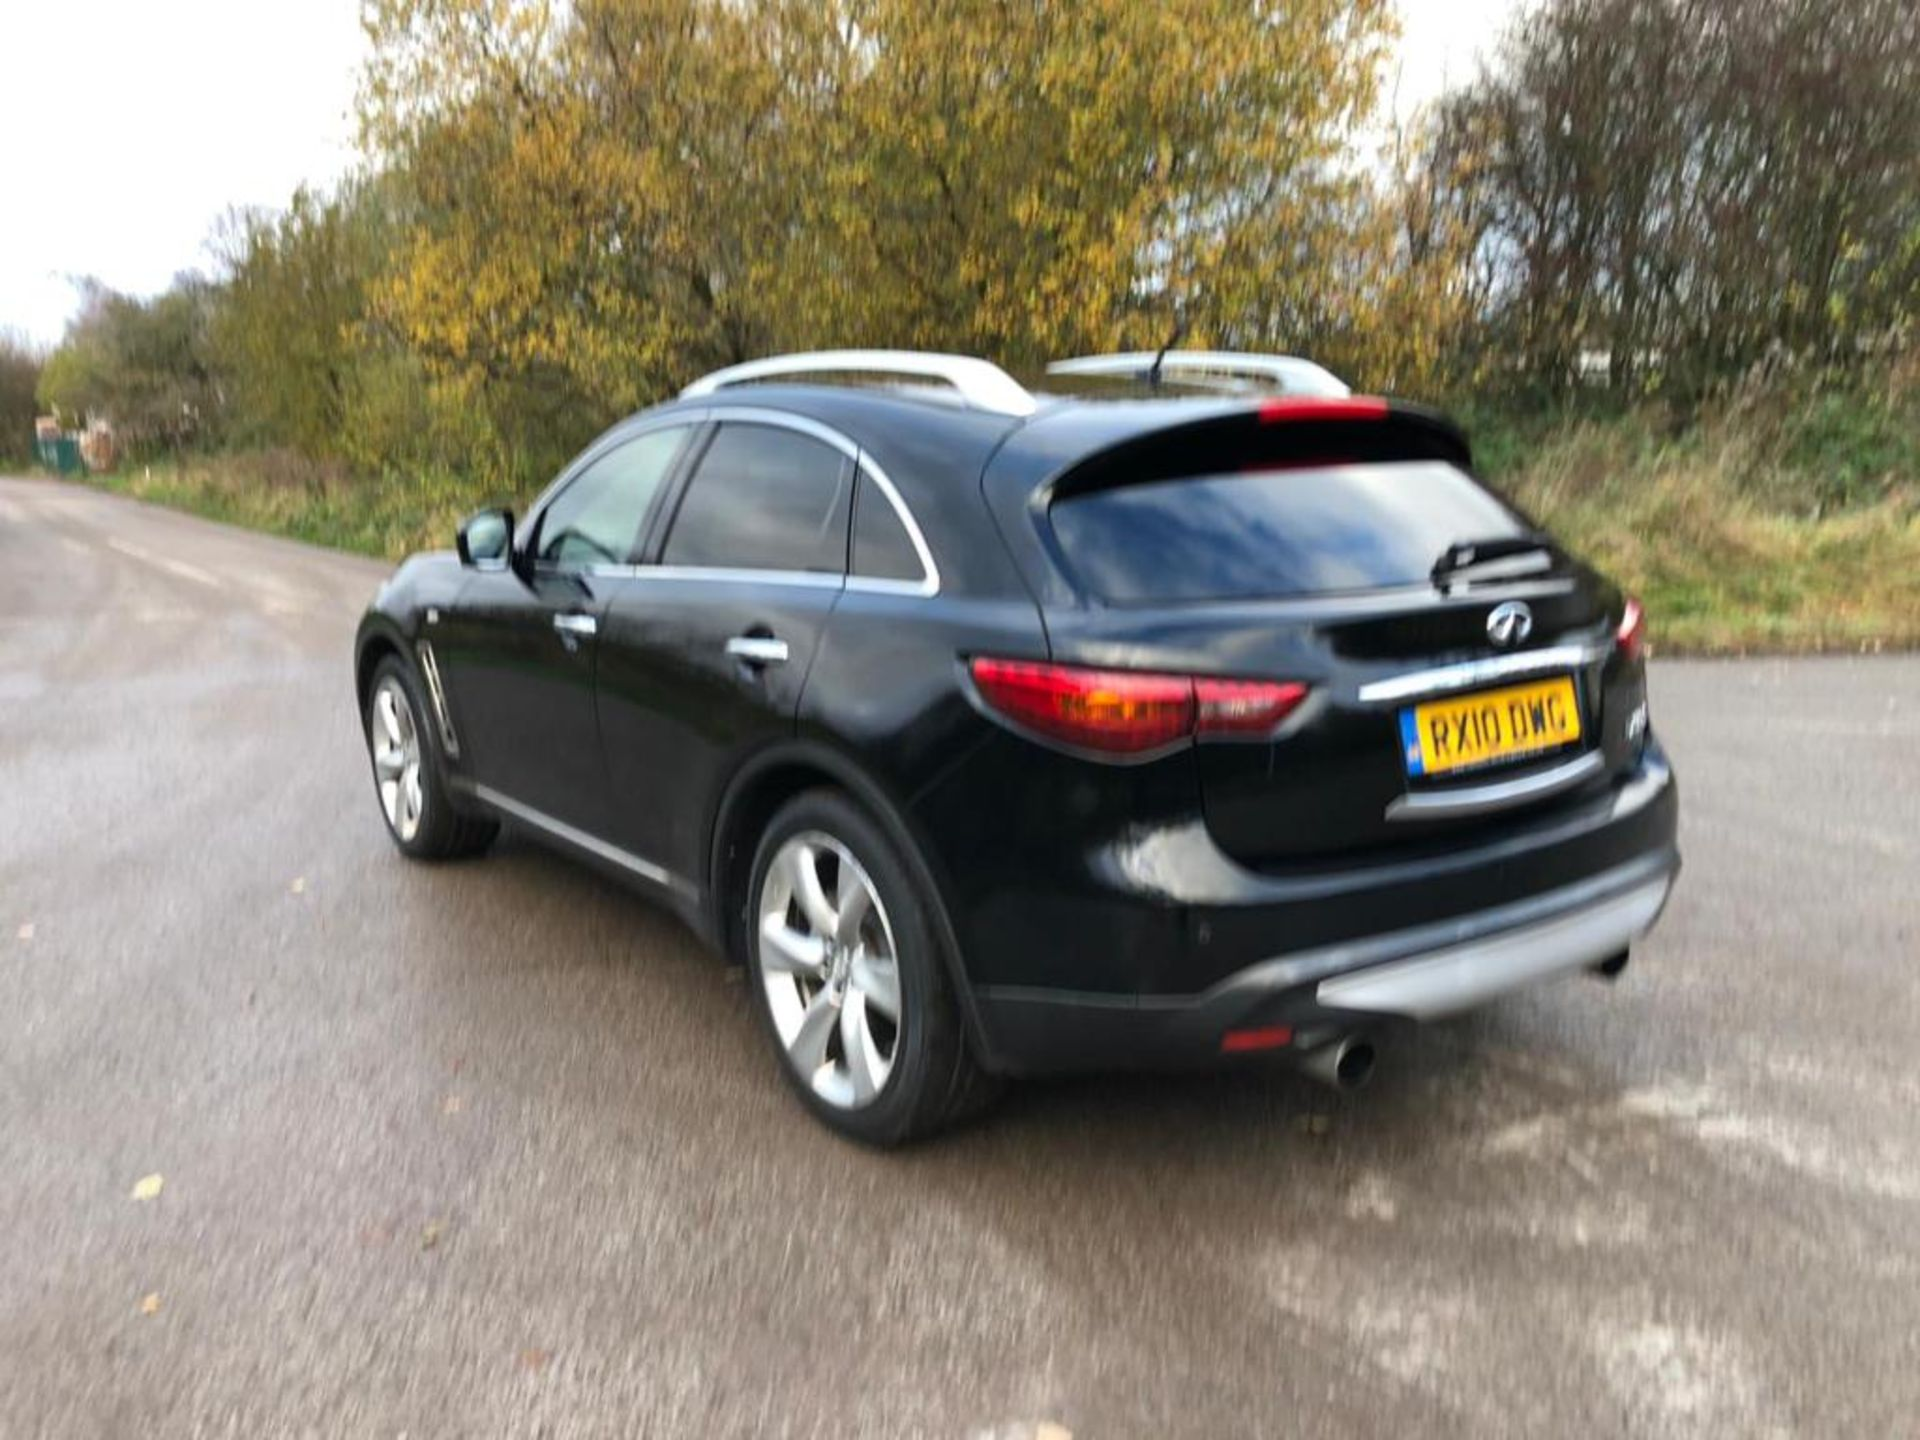 2010/10 REG INFINITI FX30 S AUTO 3.0L DIESEL 7 SPEED AUTOMATIC, SHOWING 2 FORMER KEEPERS *NO VAT* - Image 3 of 22